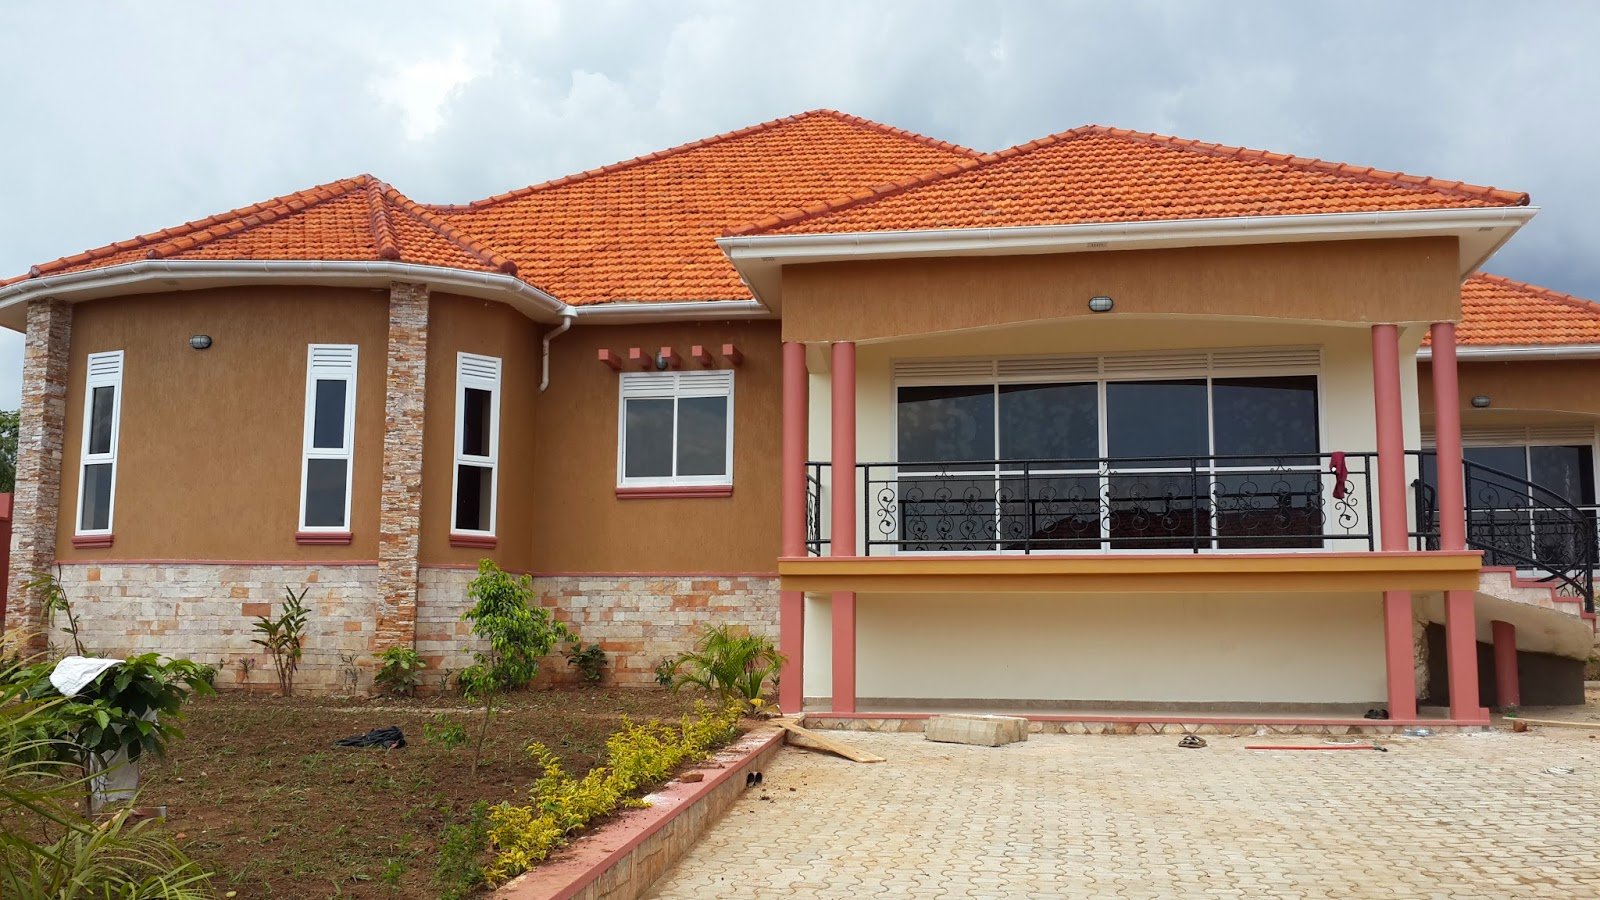 Houses for sale kampala uganda house for sale kira for Good house photos